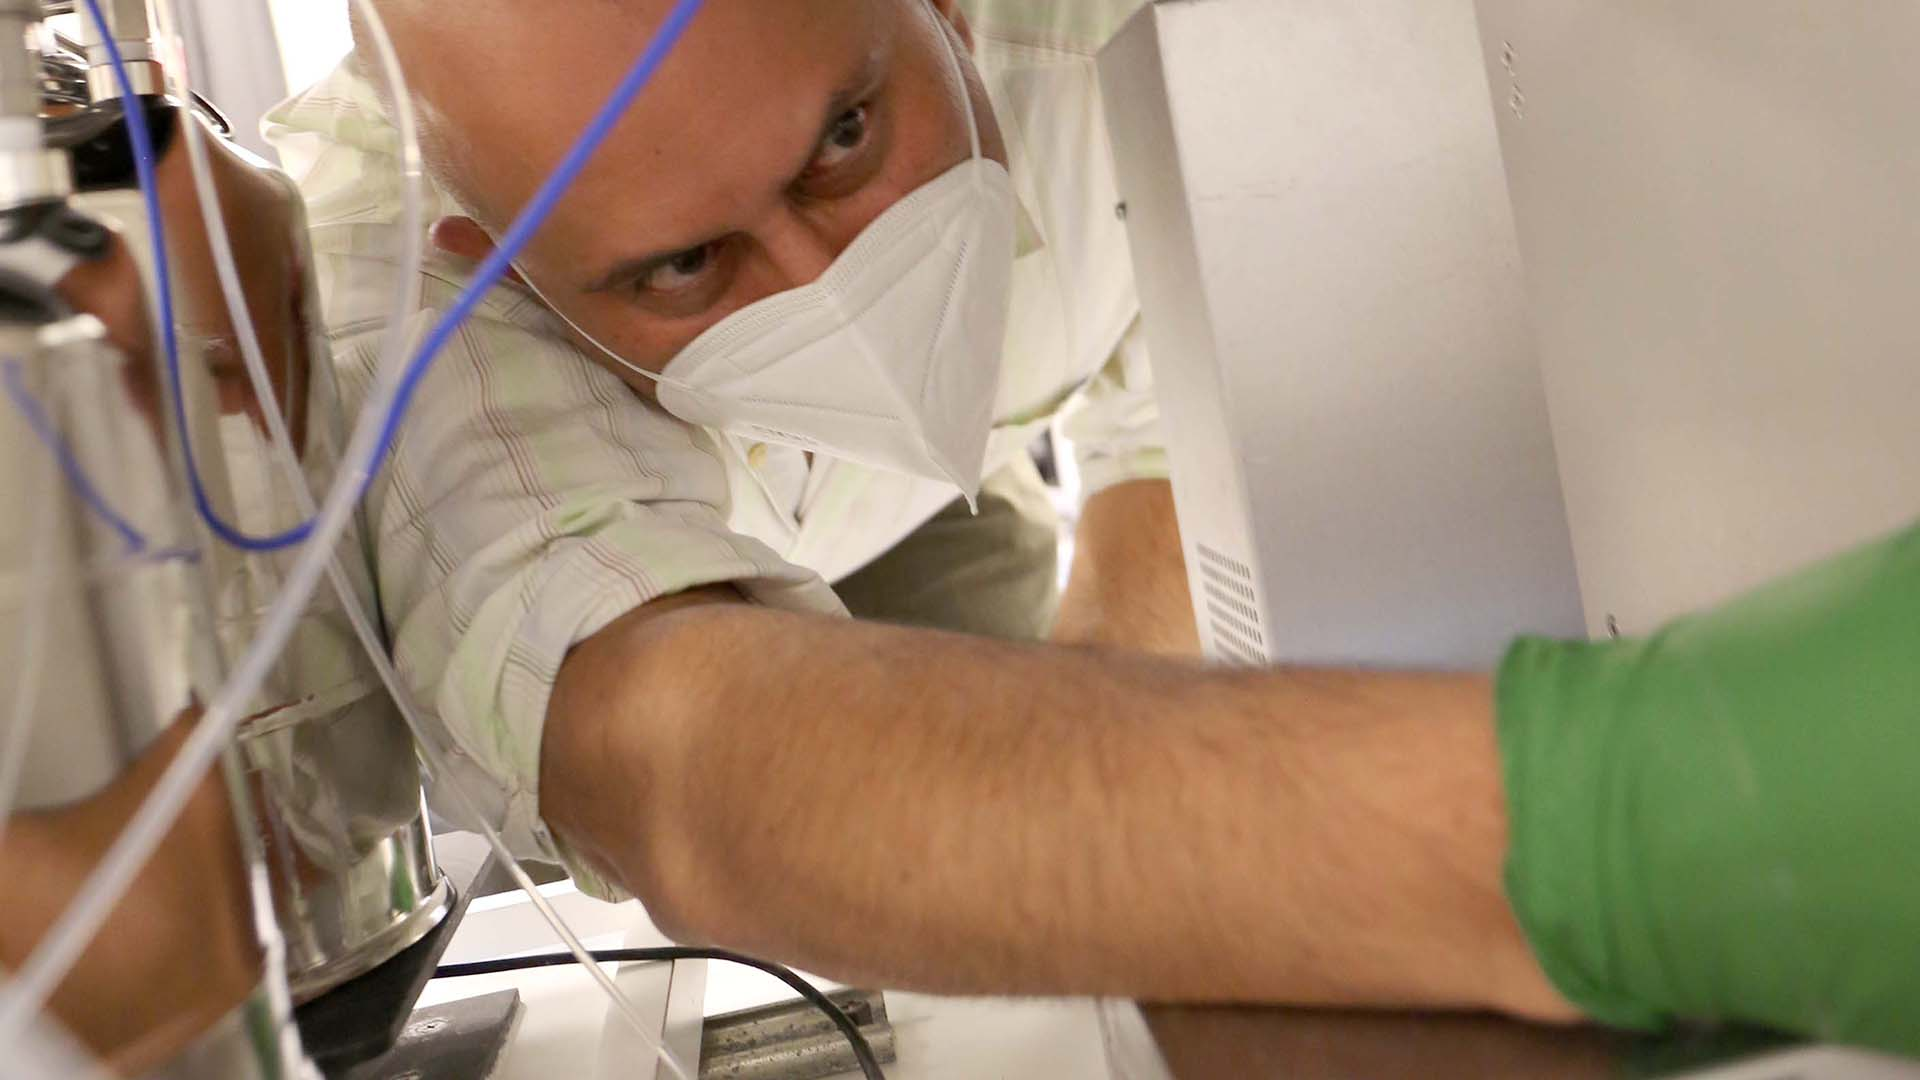 A man wearing a mask works to fix a machine in a lab. A blue wire hangs in front of his face.